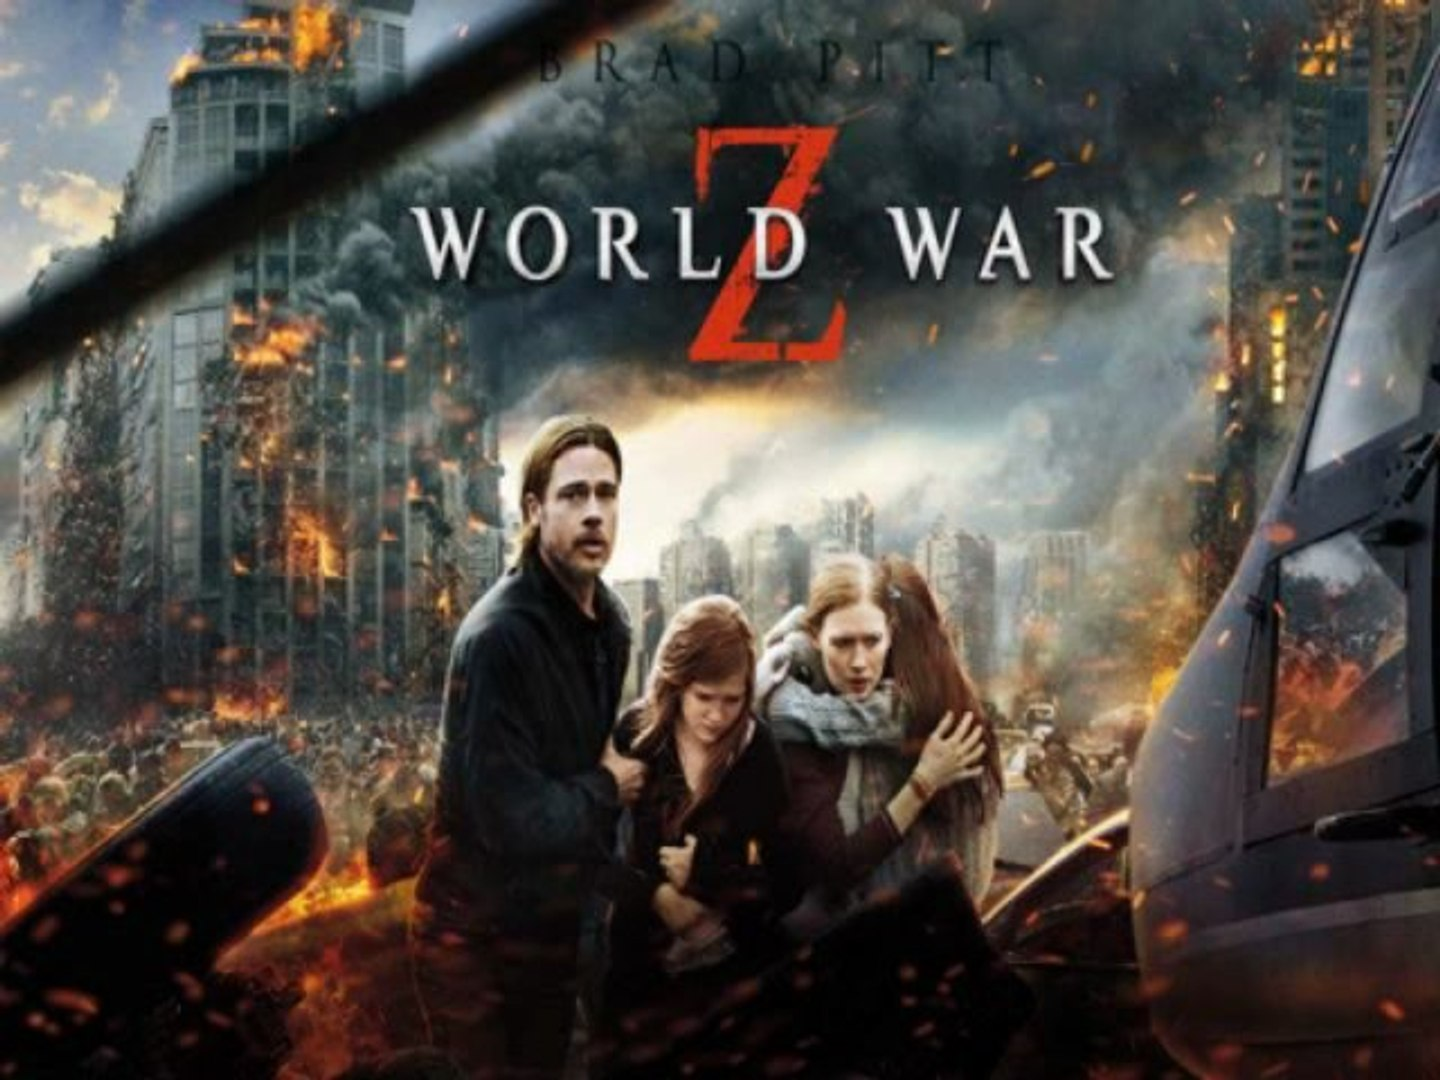 [FuLL MOVIE] ++World War Z Online Movie Free Download [streaming movie hulu]